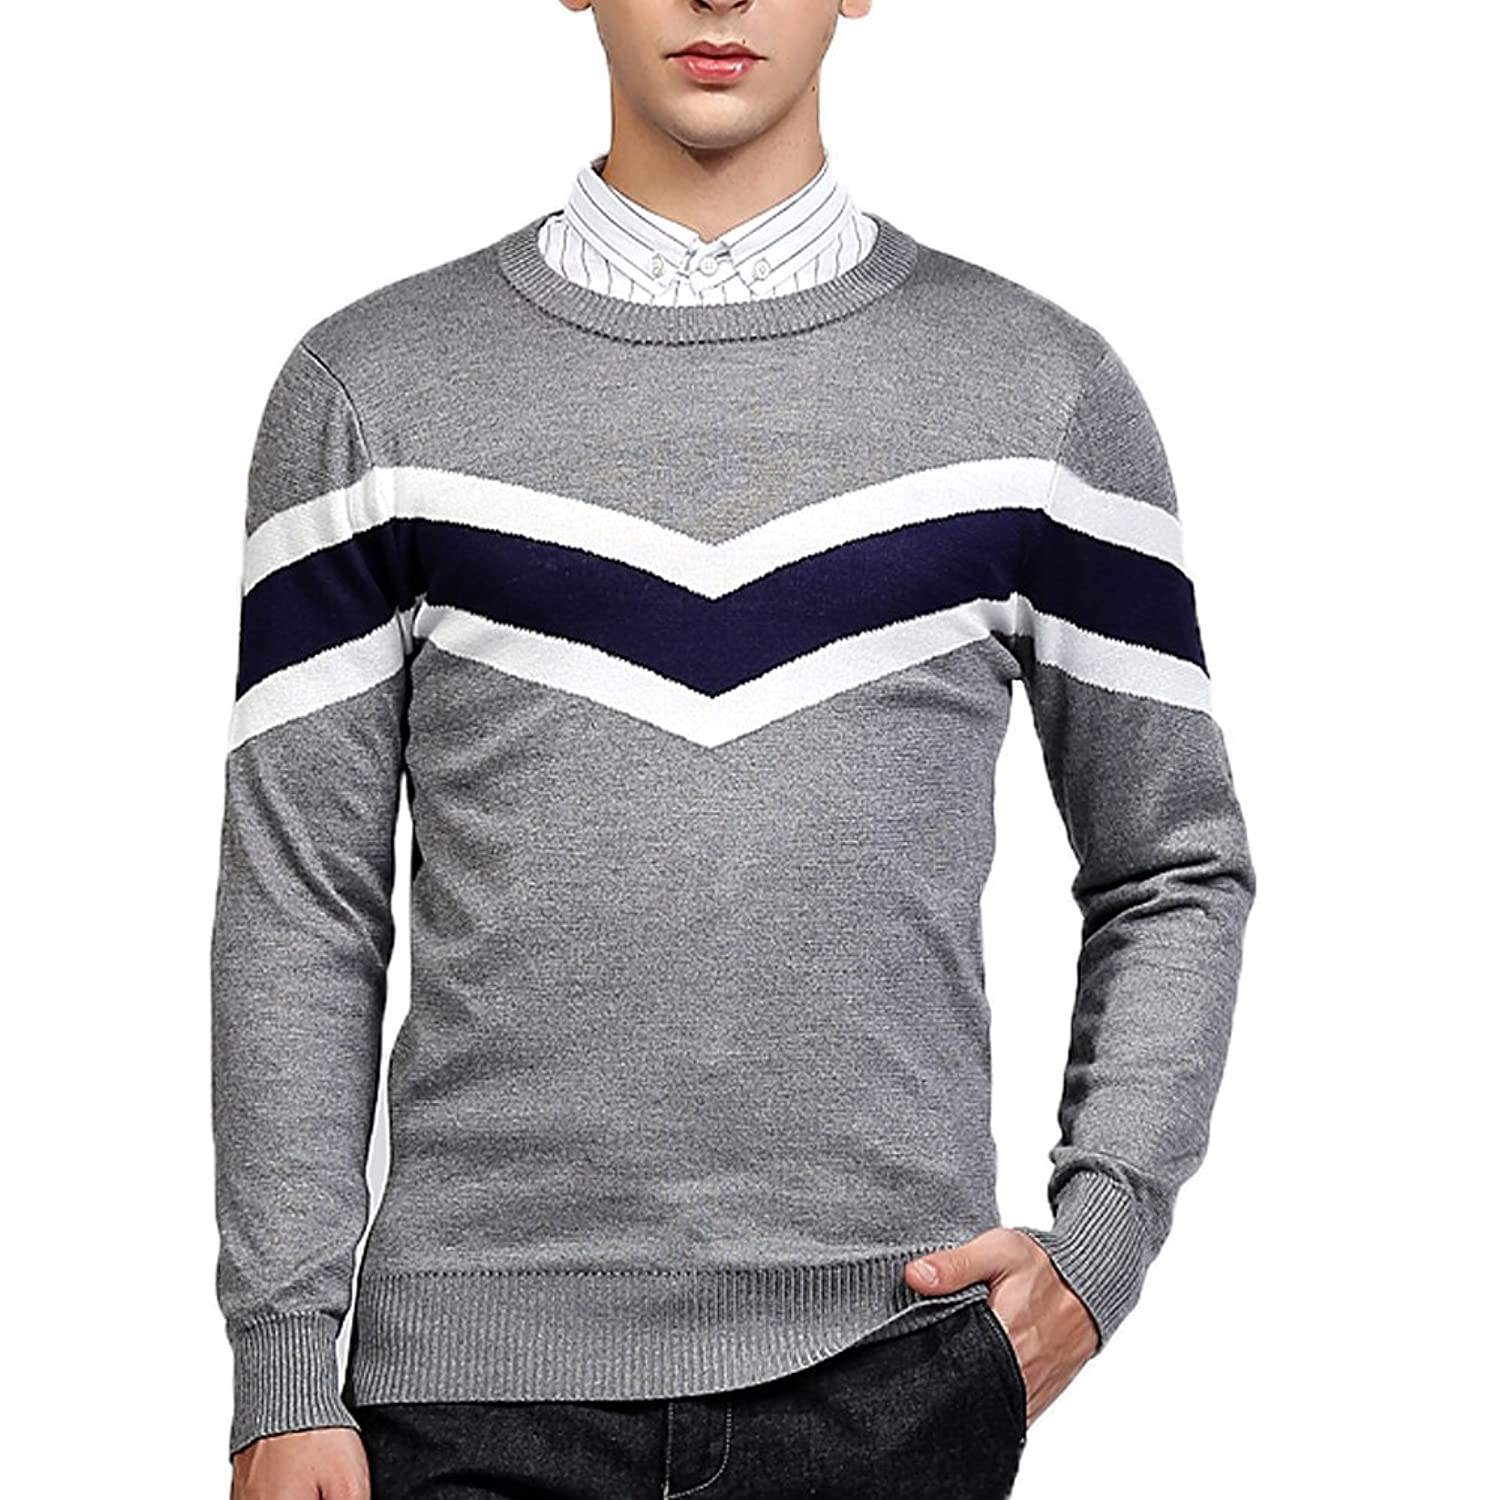 Men's Fine Gauge Knit Slim Fit Casual Pullover Sweaters Tops